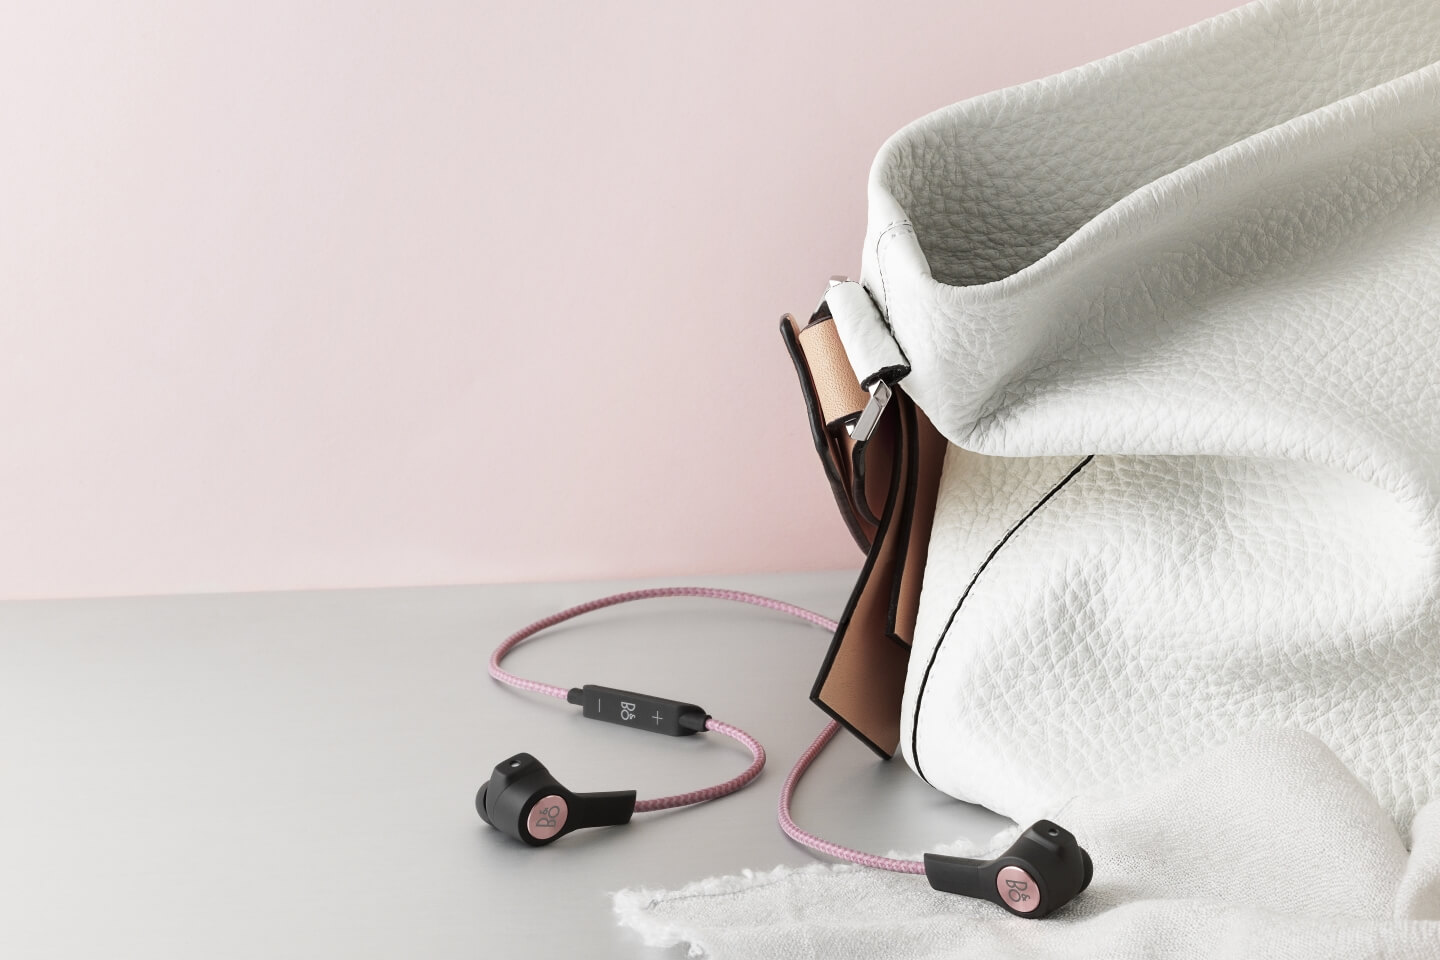 BeoPLay H5 in dusty rose or black